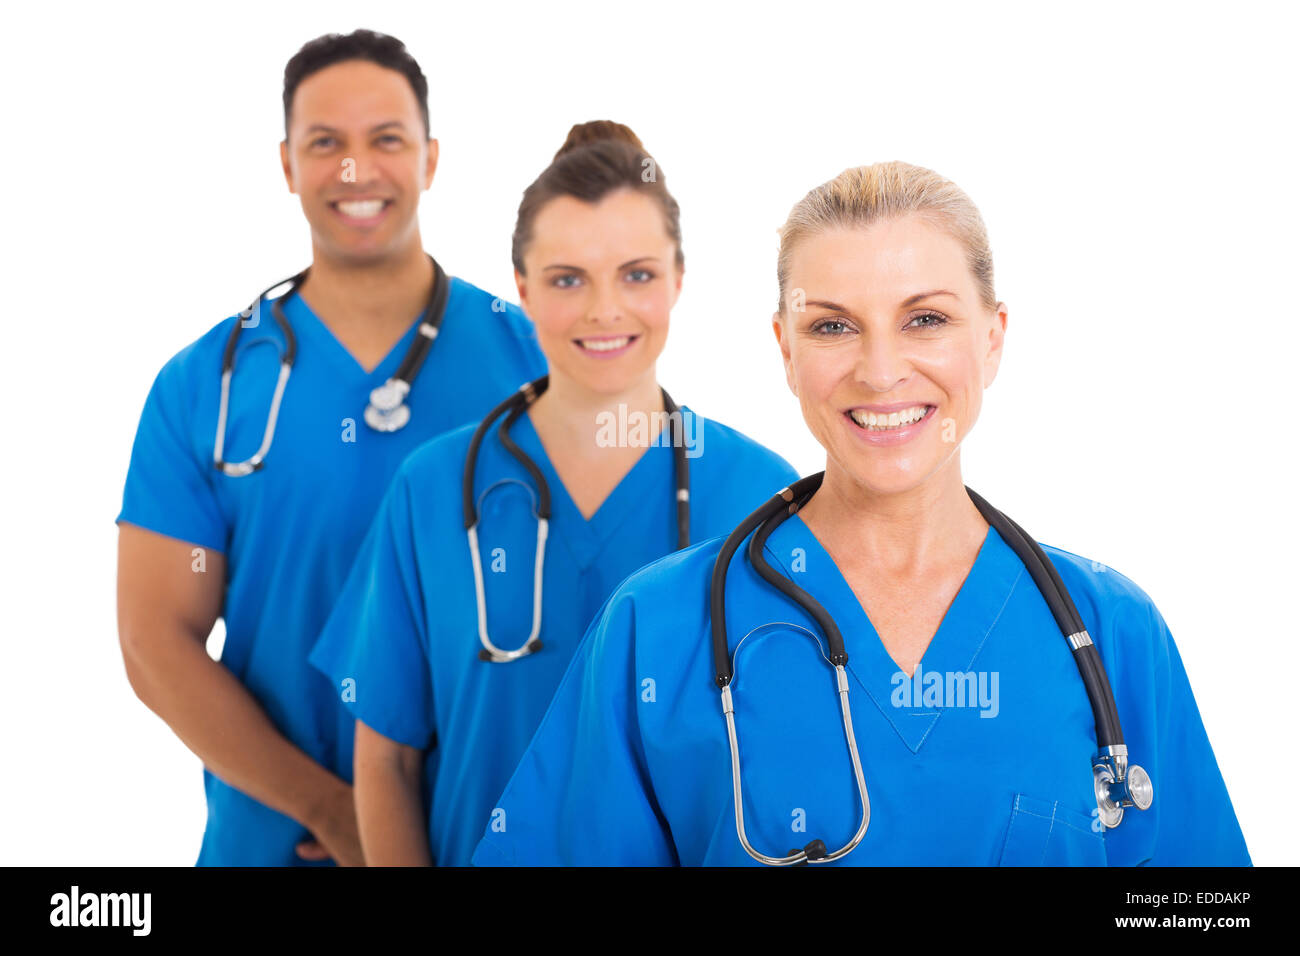 confident senior medical doctor and colleagues - Stock Image